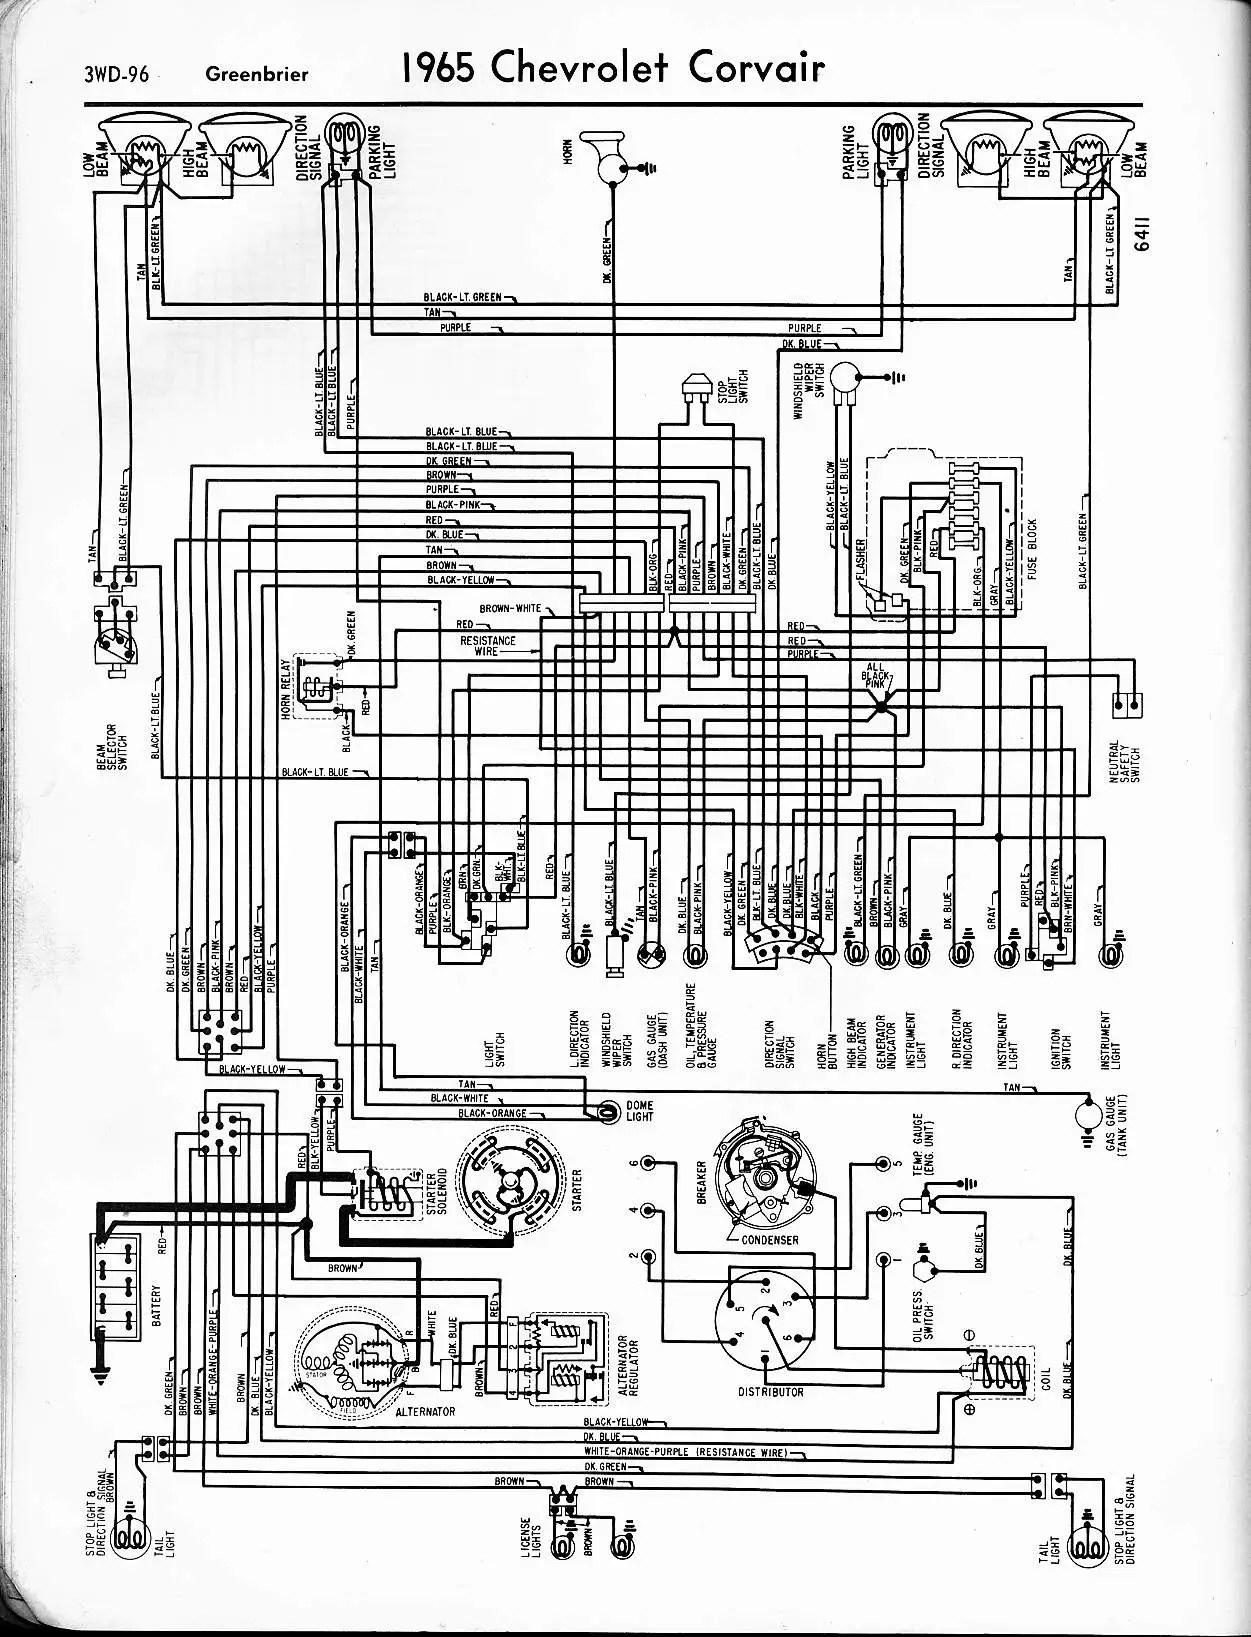 hight resolution of 1965 corvair wiring diagram wiring diagram expert 1965 chevy corvair wiring diagram 1965 corvair wiring diagram